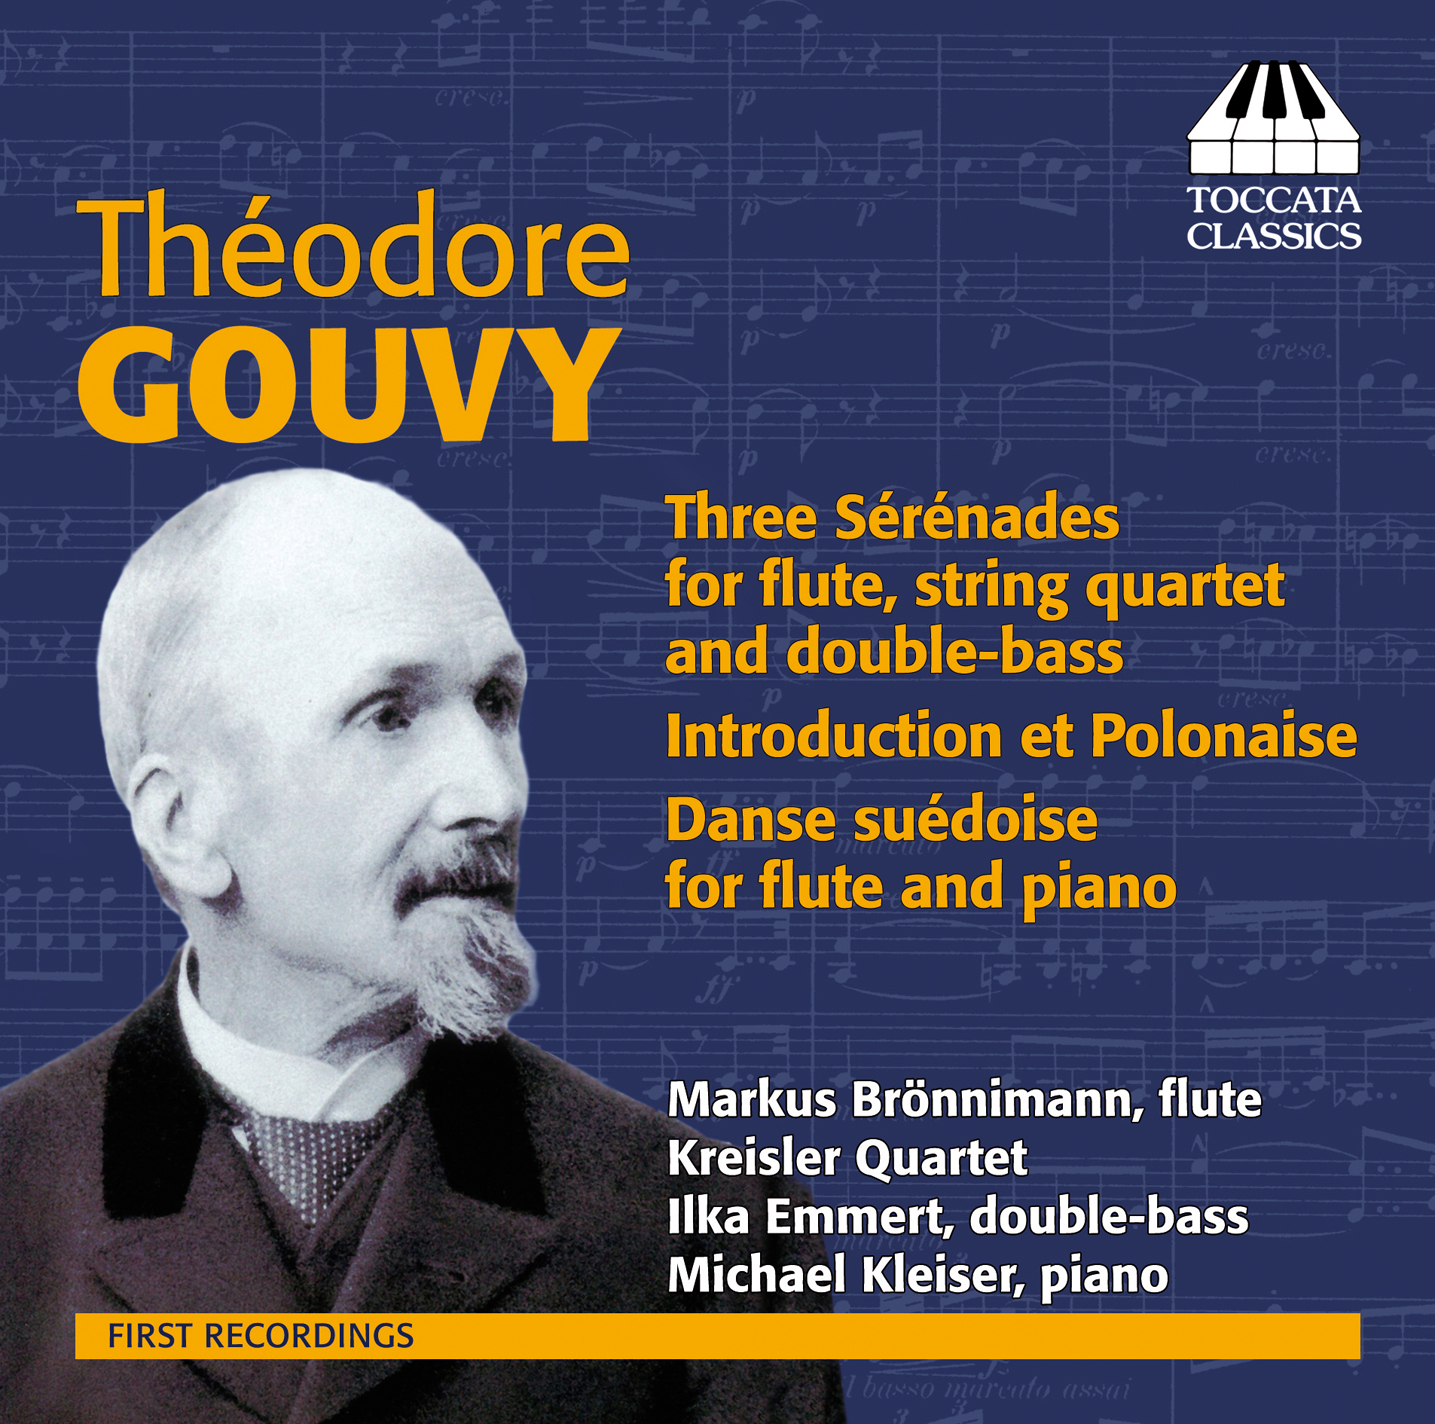 Serenade No. 2 in F Major, Op. 84, Serenade No. 2 in F Major, Op. 84: I. Tema con variazioni: Andante maestoso